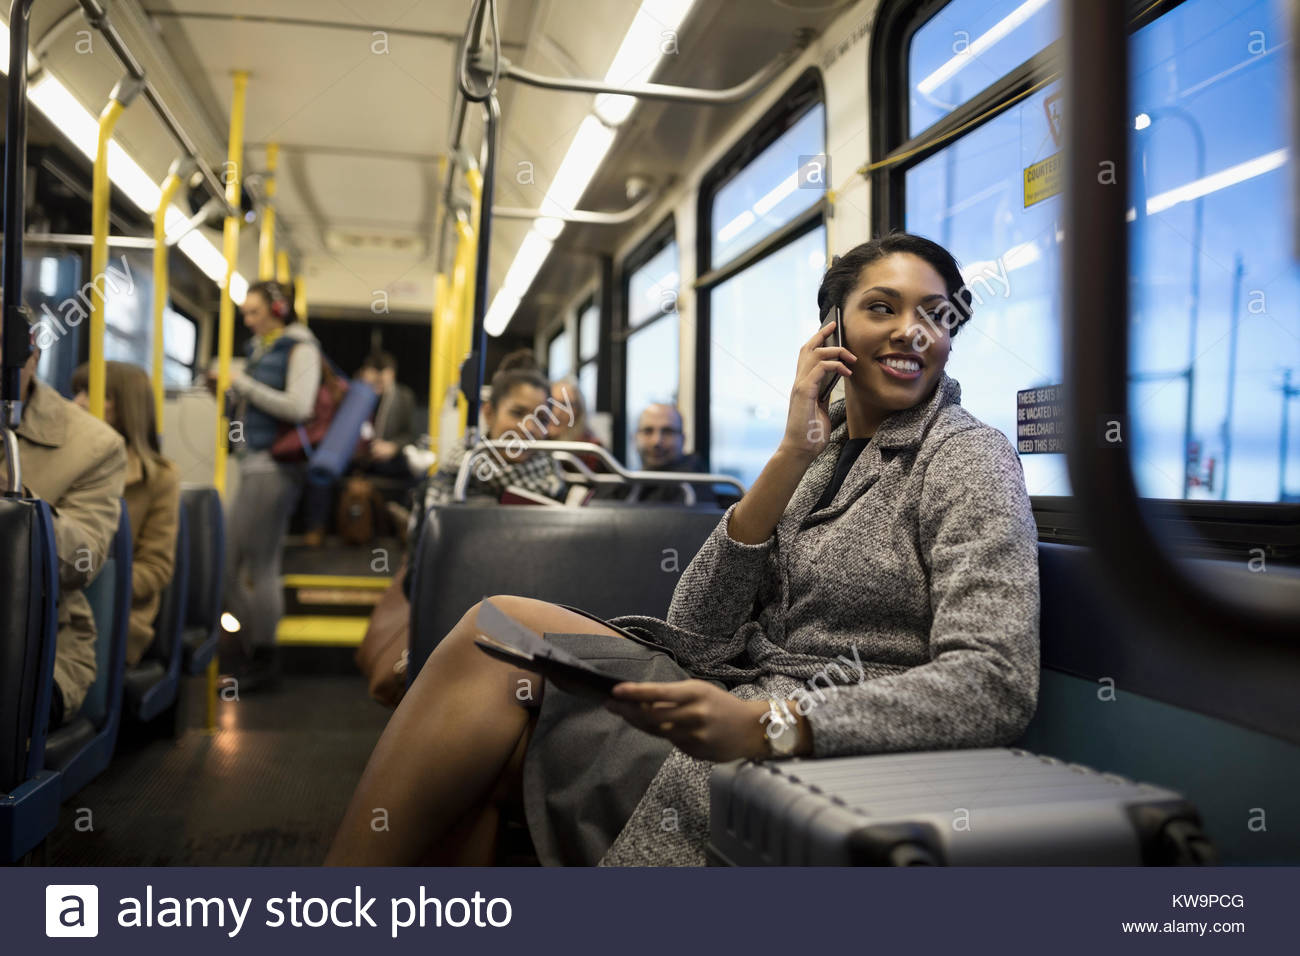 Smiling businesswoman commuter with suitcase talking on cell phone on bus - Stock Image